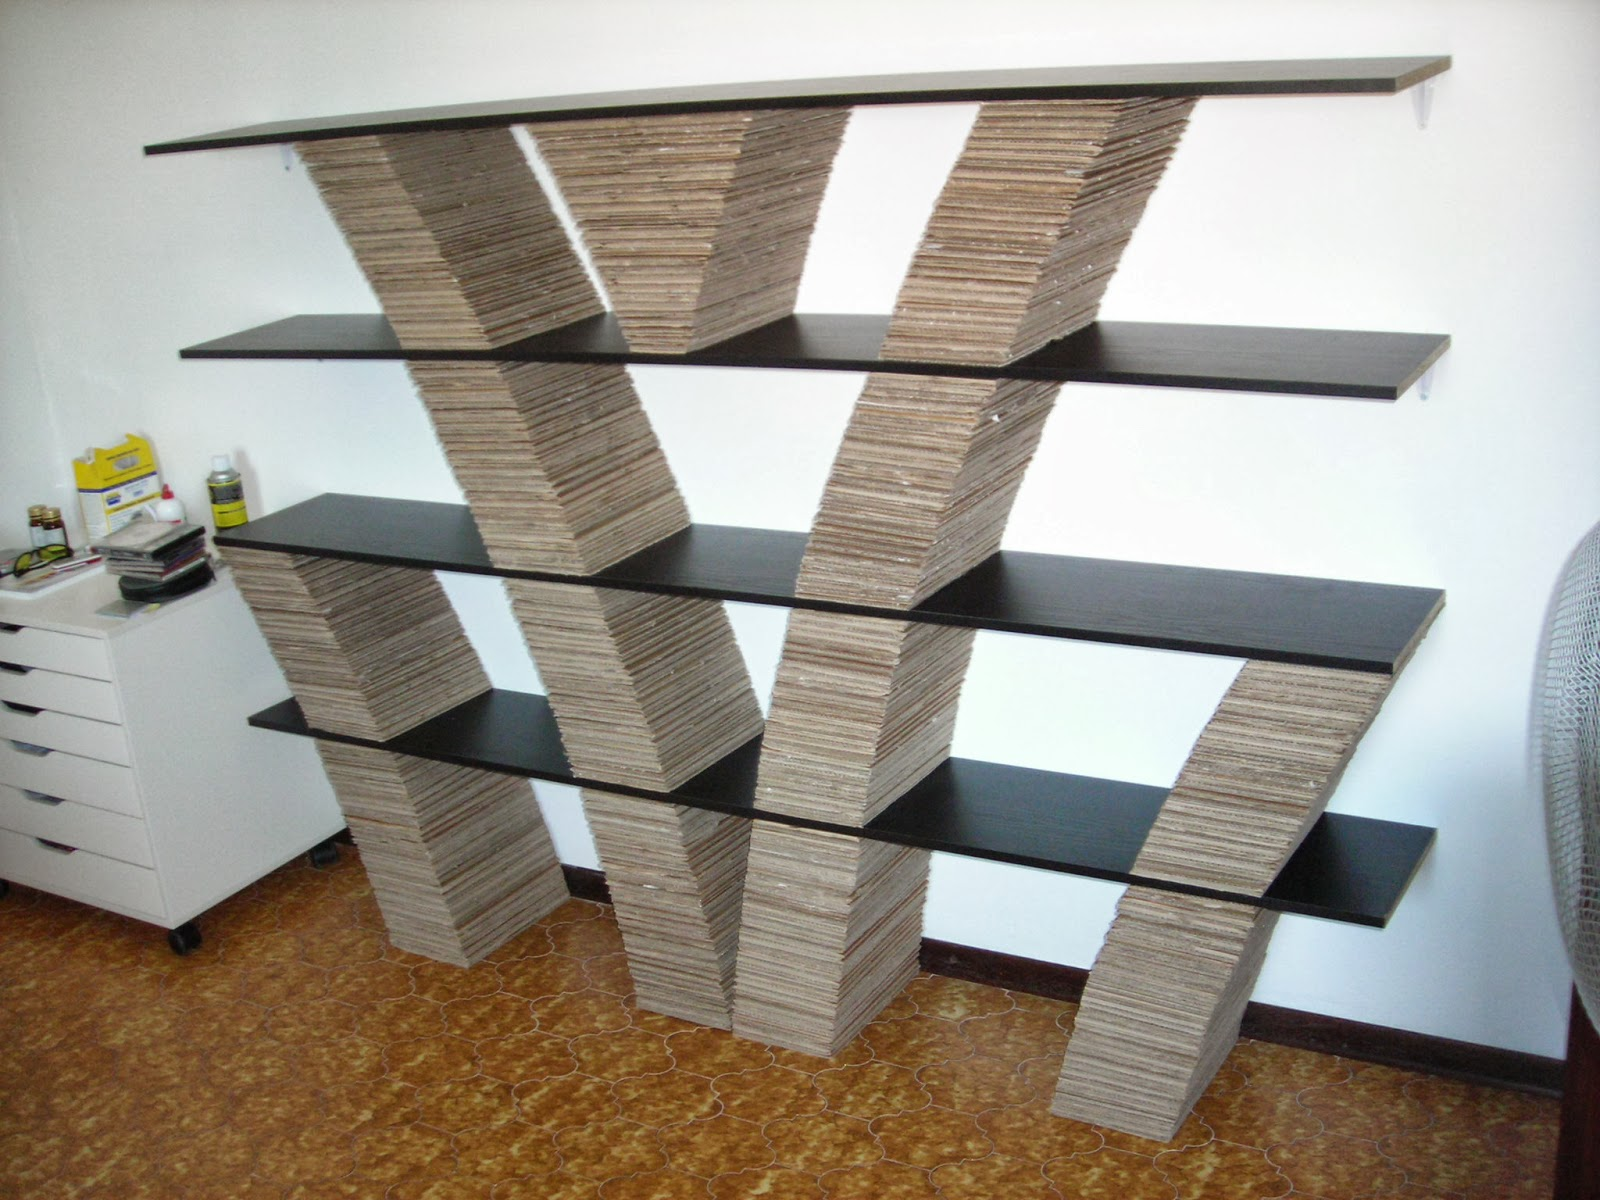 environmental sale recycled freindly furniture cardboard bookshelf corrugated material